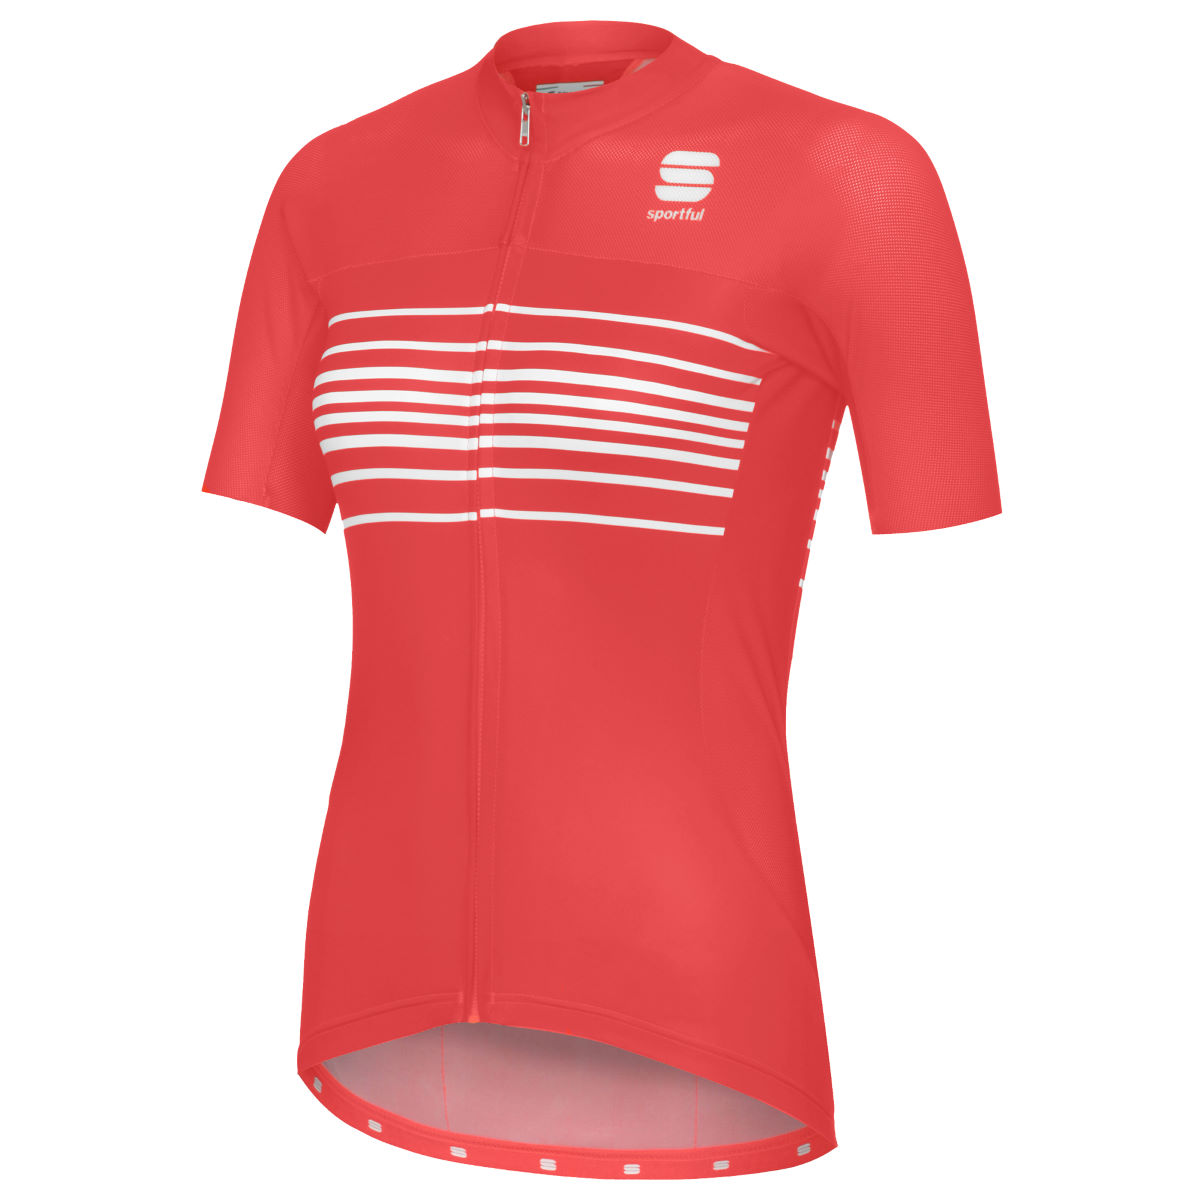 Maillot Femme Sportful Exclusive Stripe BodyFit Team - L Fluro